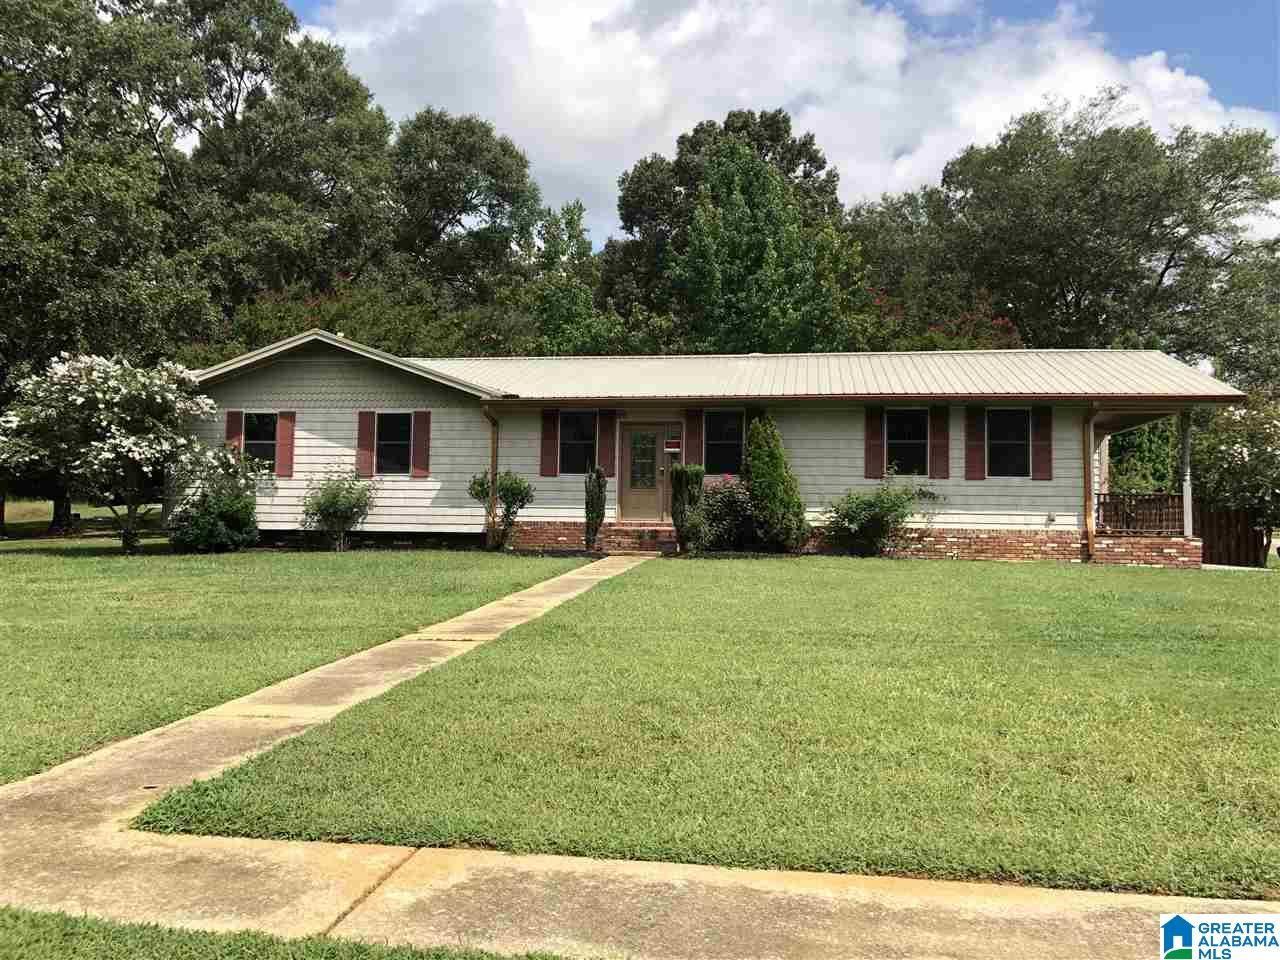 19 KAPCO DR, Anniston, AL 36207 - MLS#: 871480